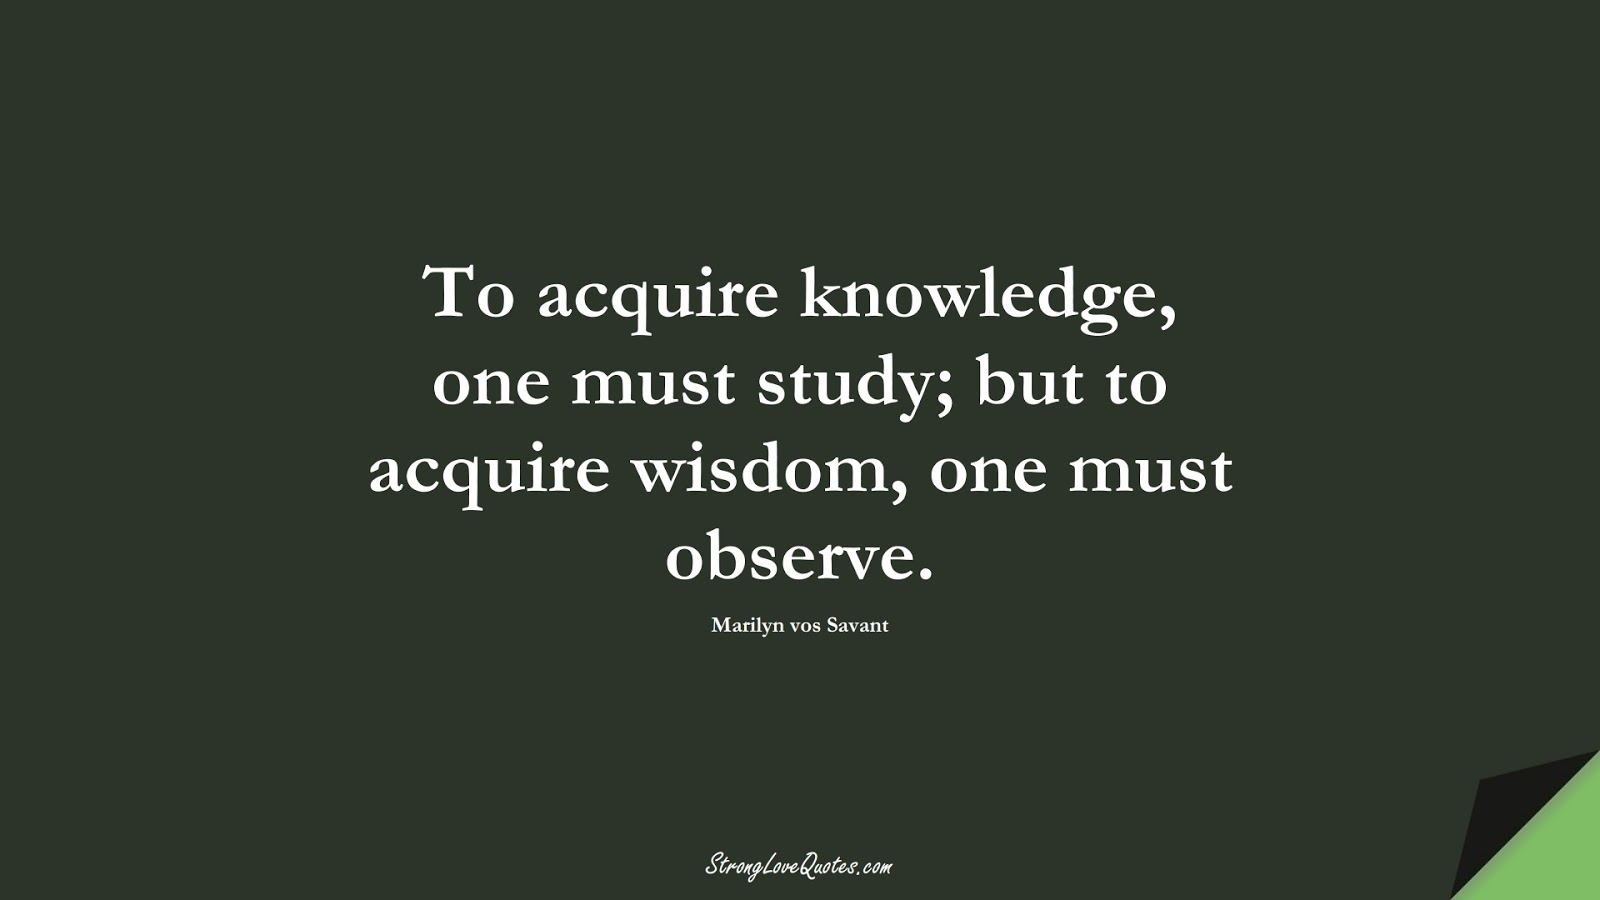 To acquire knowledge, one must study; but to acquire wisdom, one must observe. (Marilyn vos Savant);  #KnowledgeQuotes